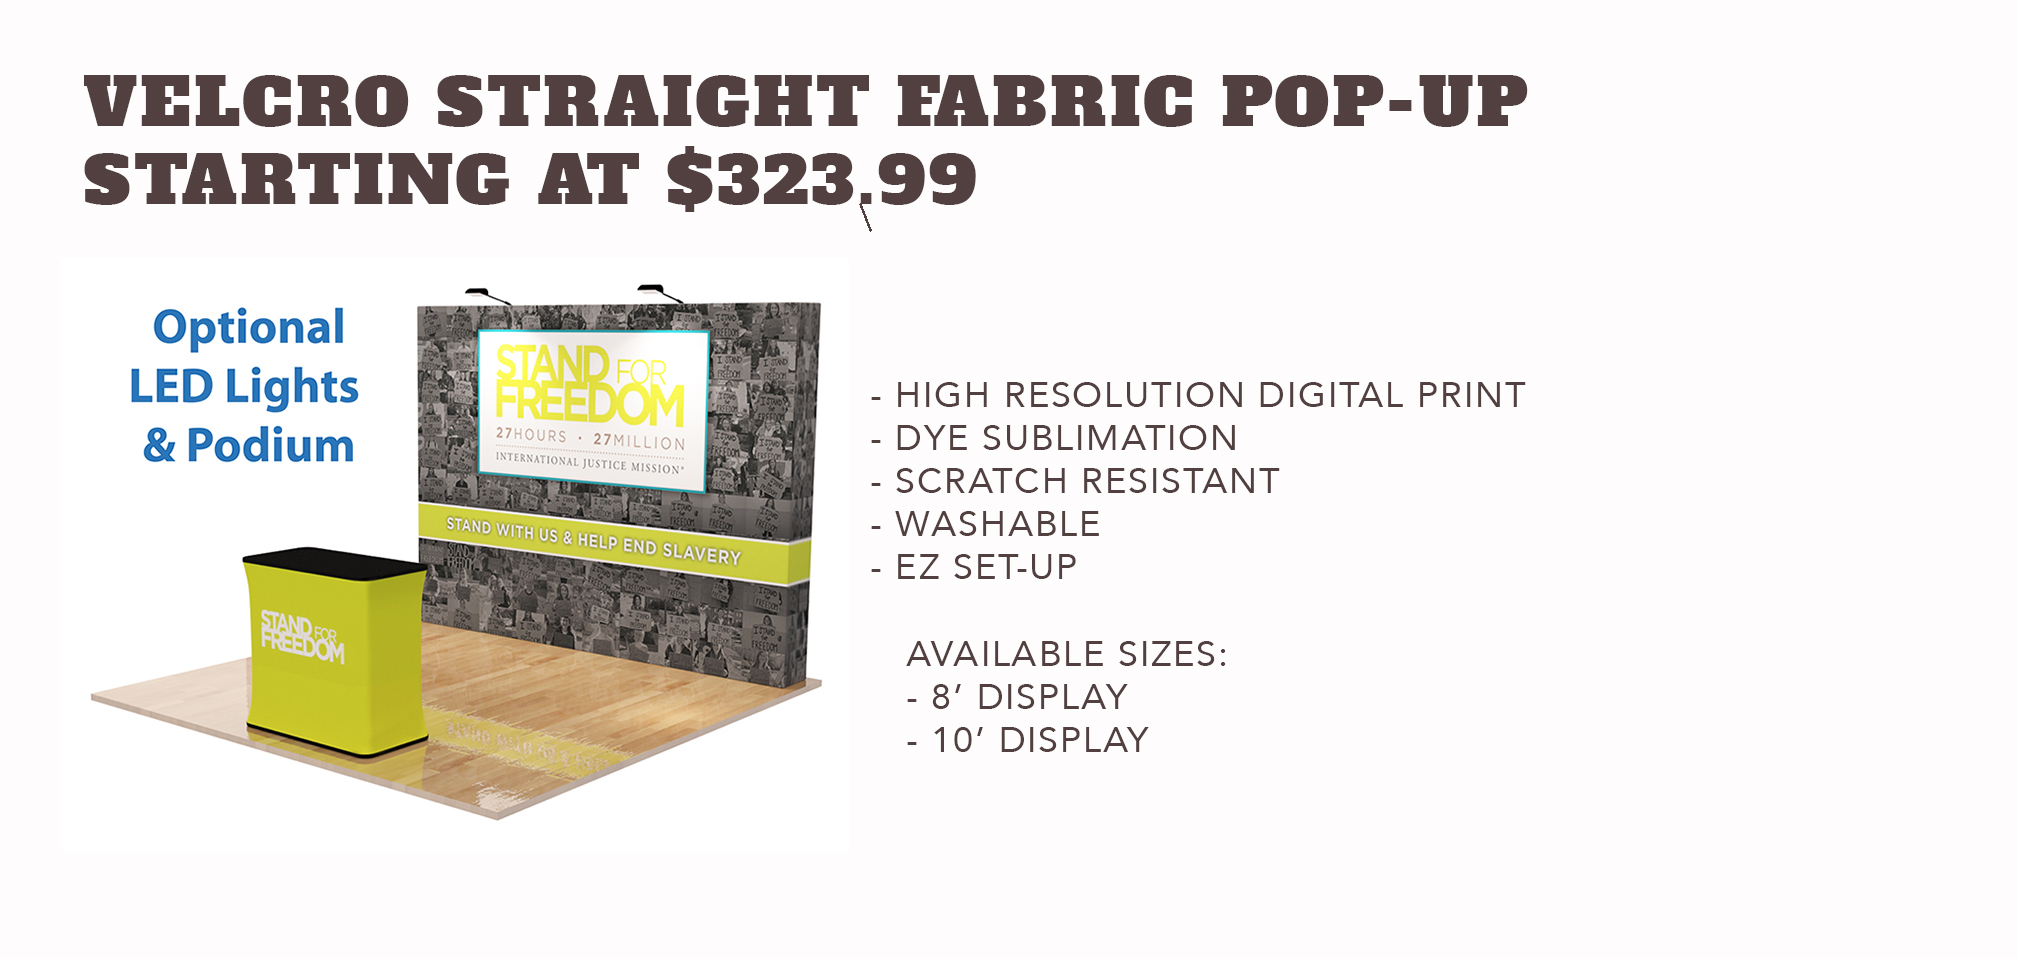 Velcro Straight Fabric Pop-up Display - Starting at $323.99